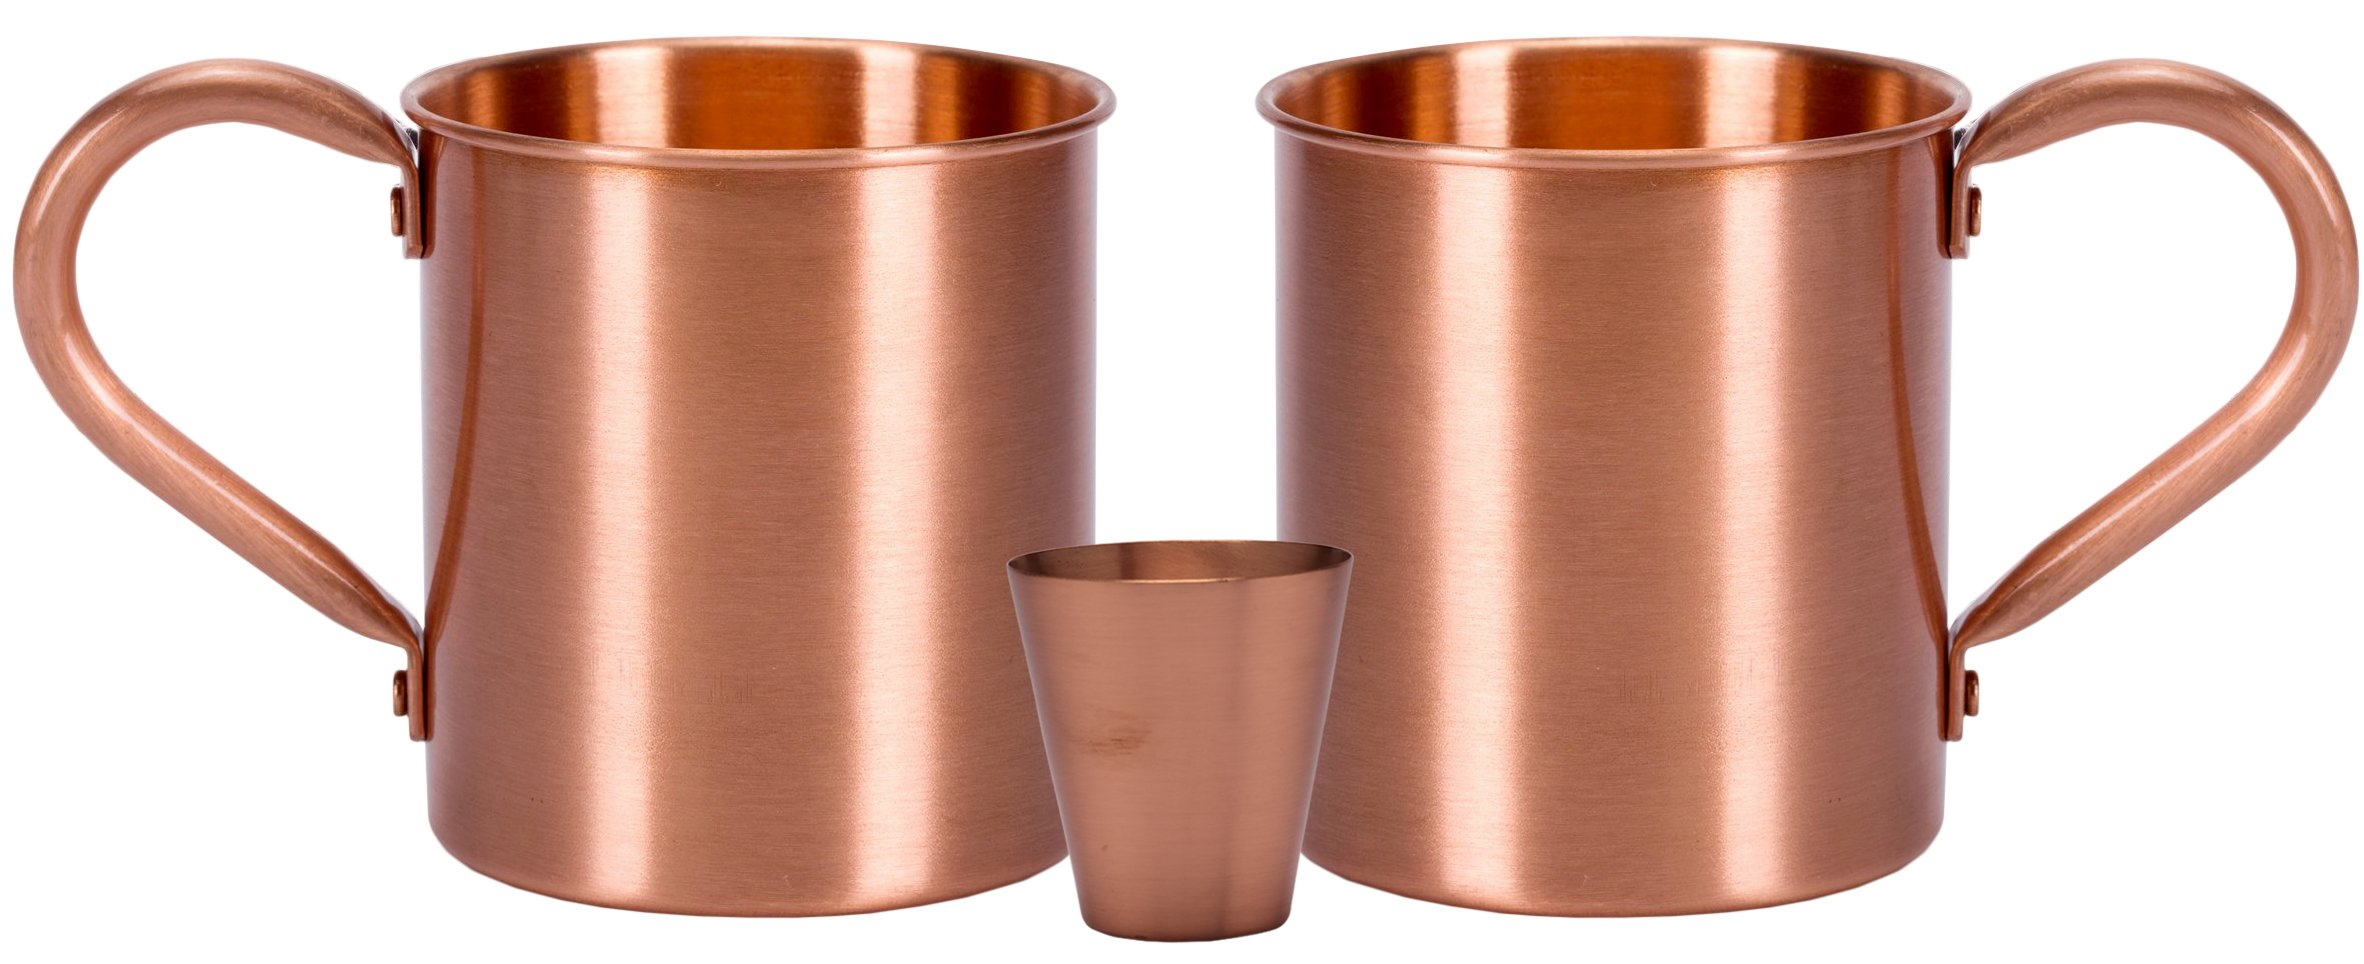 Melange 16 Oz Copper Classic Mug for Moscow Mules, Set of 16 with Eight Shot Glasses - Heavy Gauge - No lining - includes FREE Recipe card